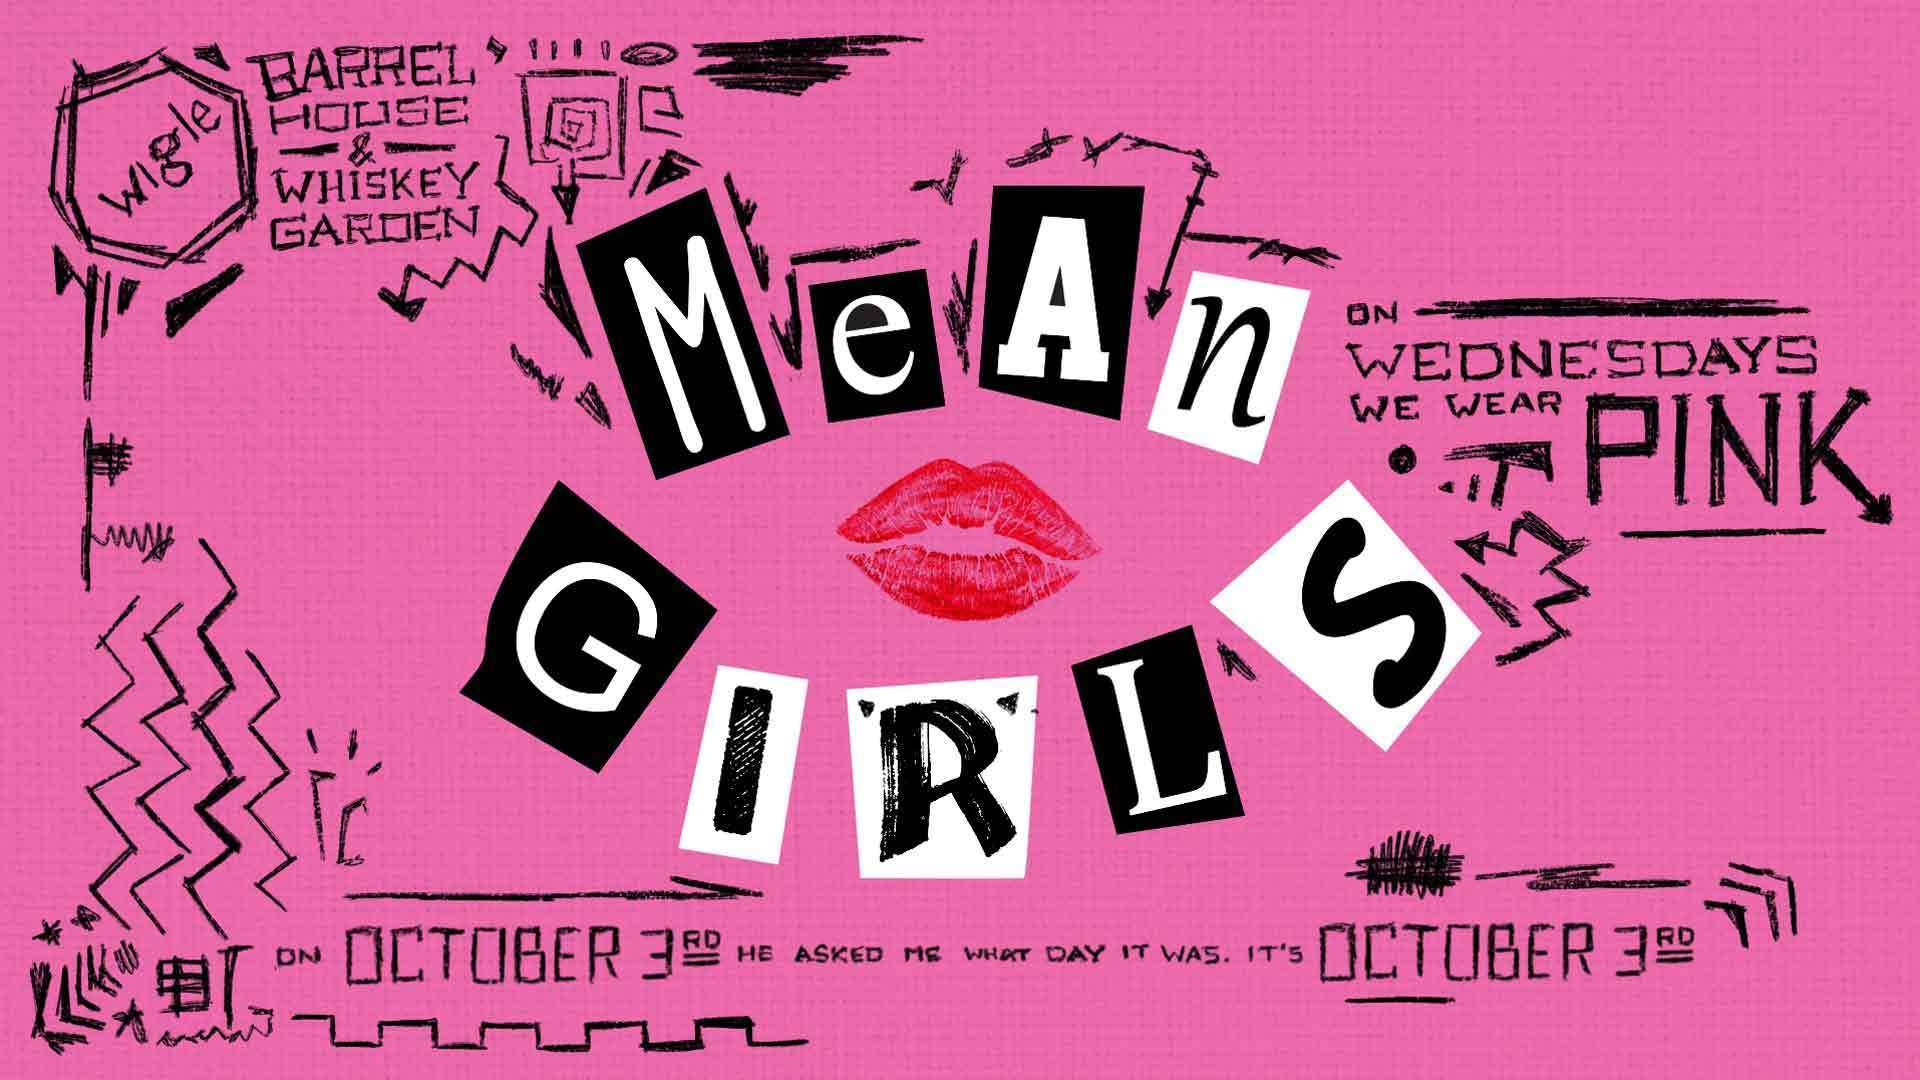 Thursday, October 3rd - Mean Girls Trivia Night - Wigle Barrelhouse